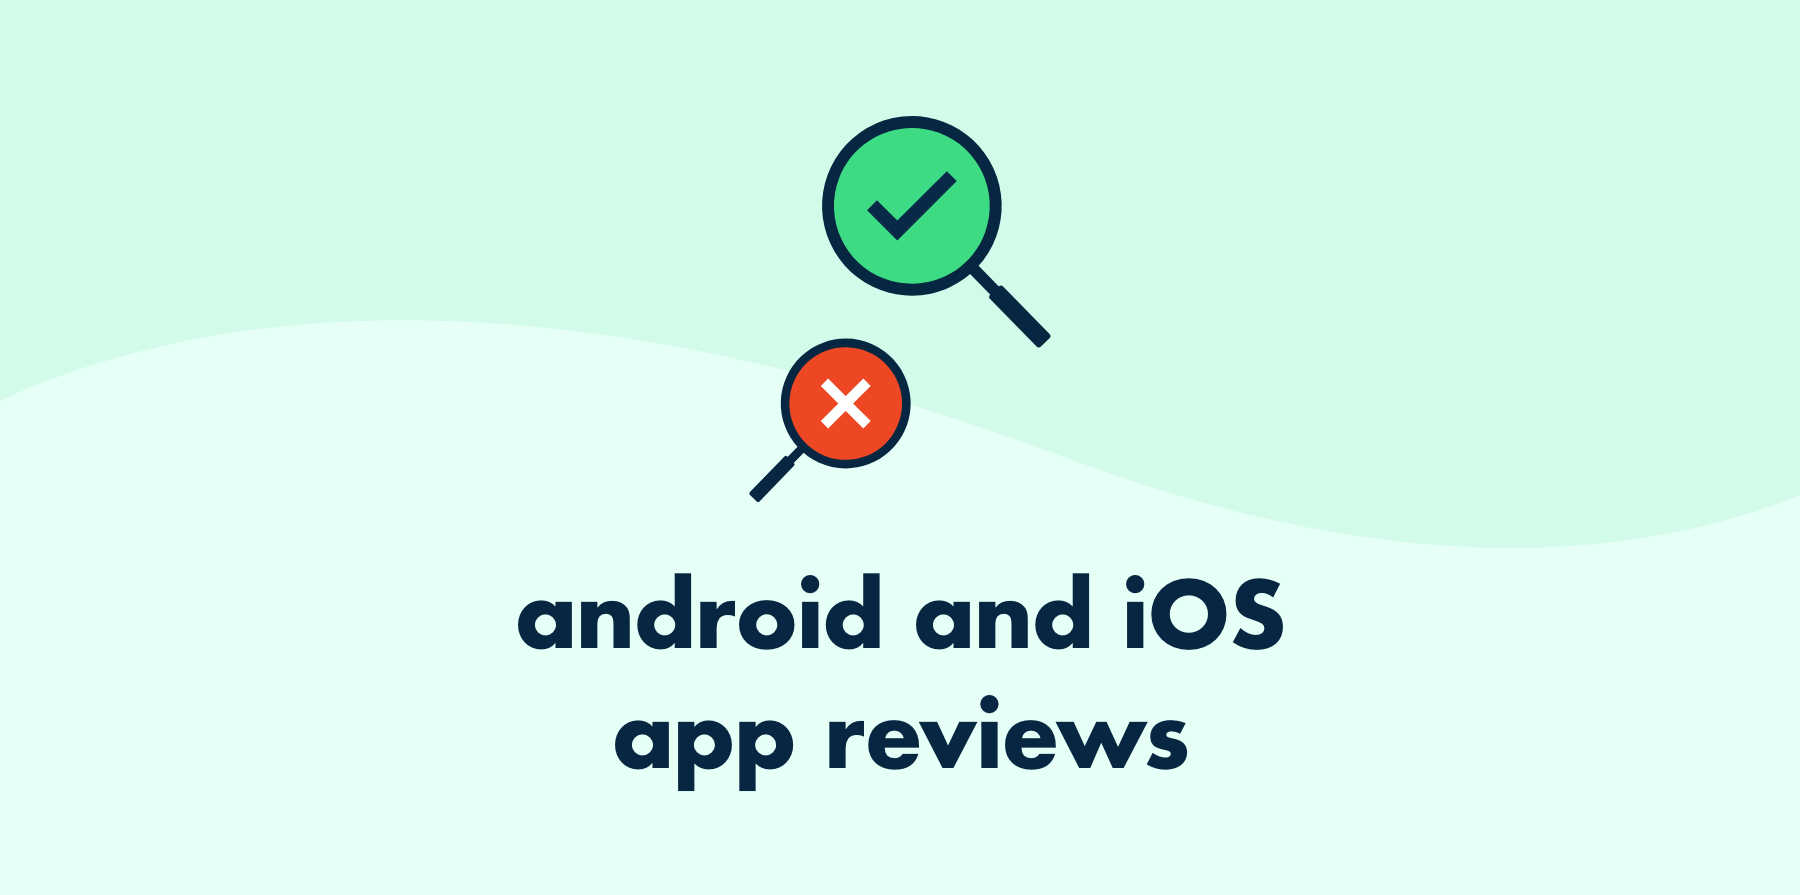 android and ios app reviews header image